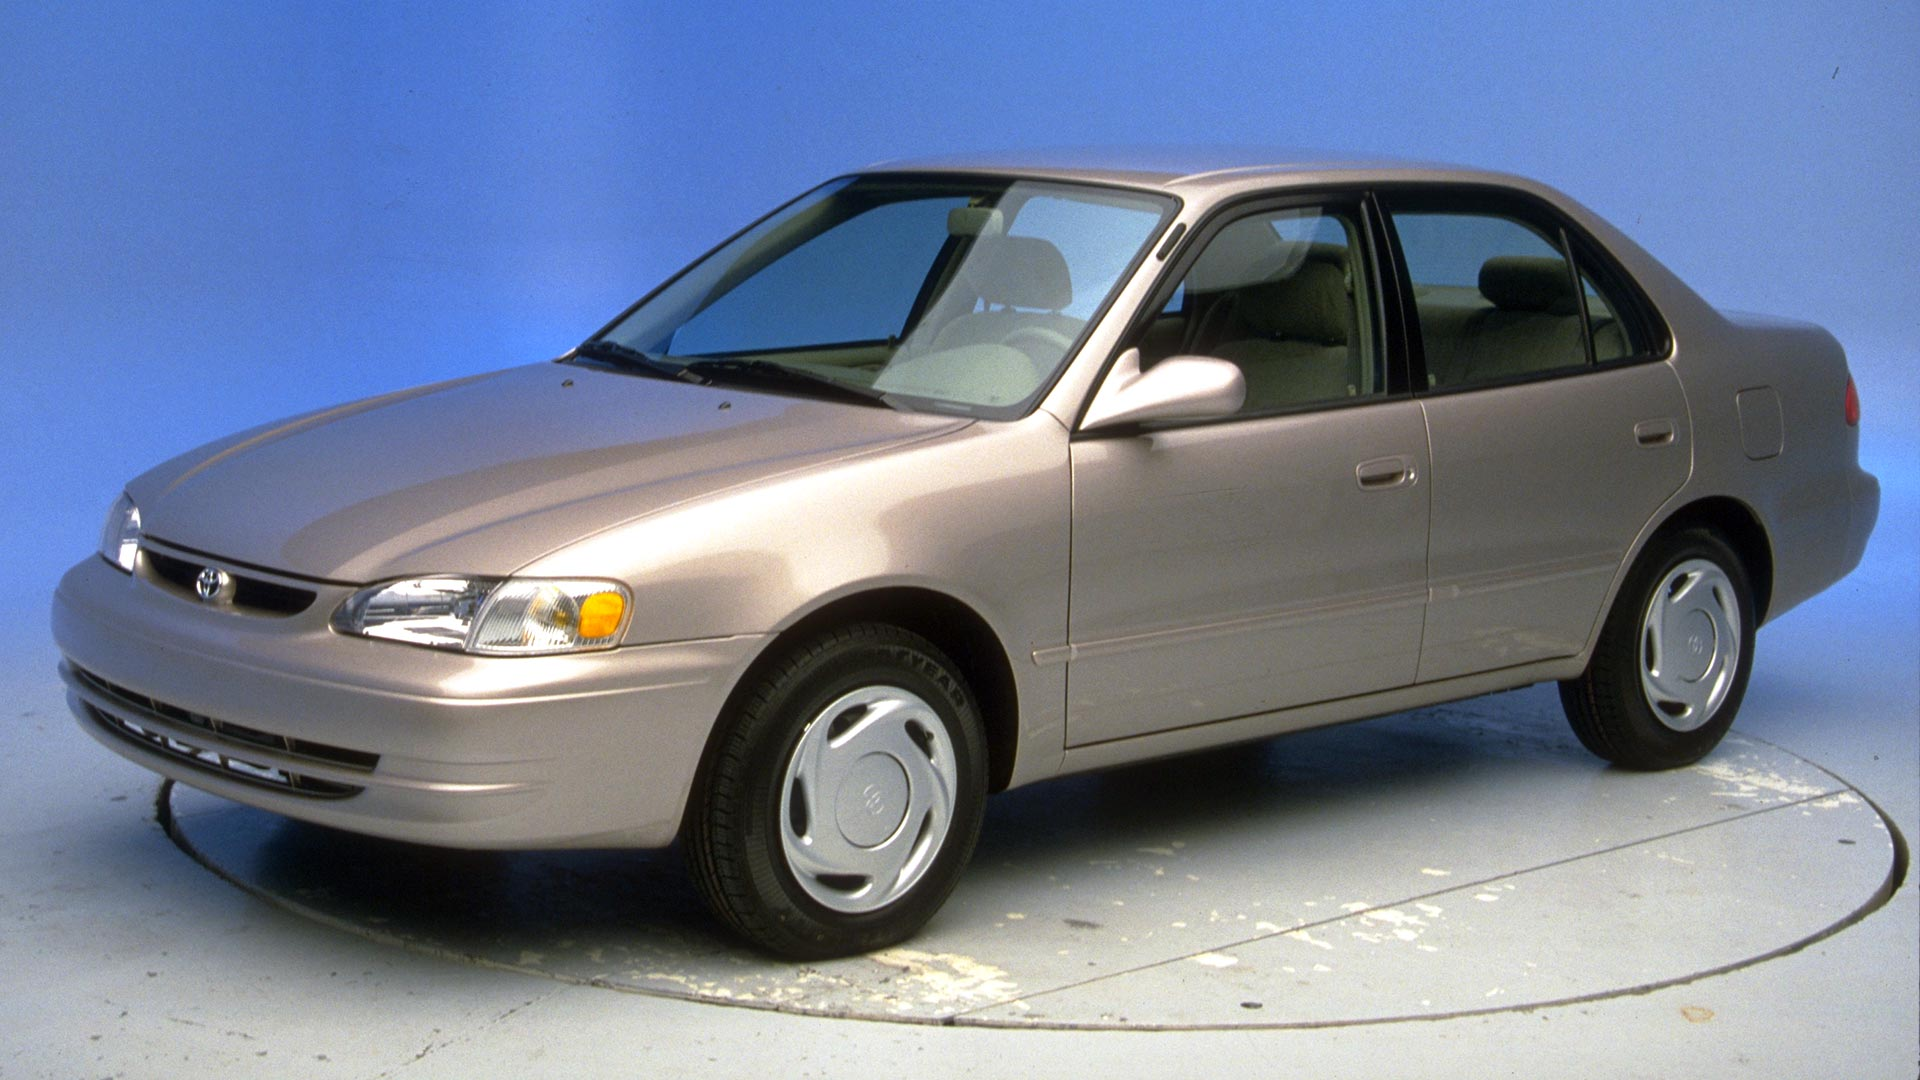 1999 Toyota Corolla 4-door sedan